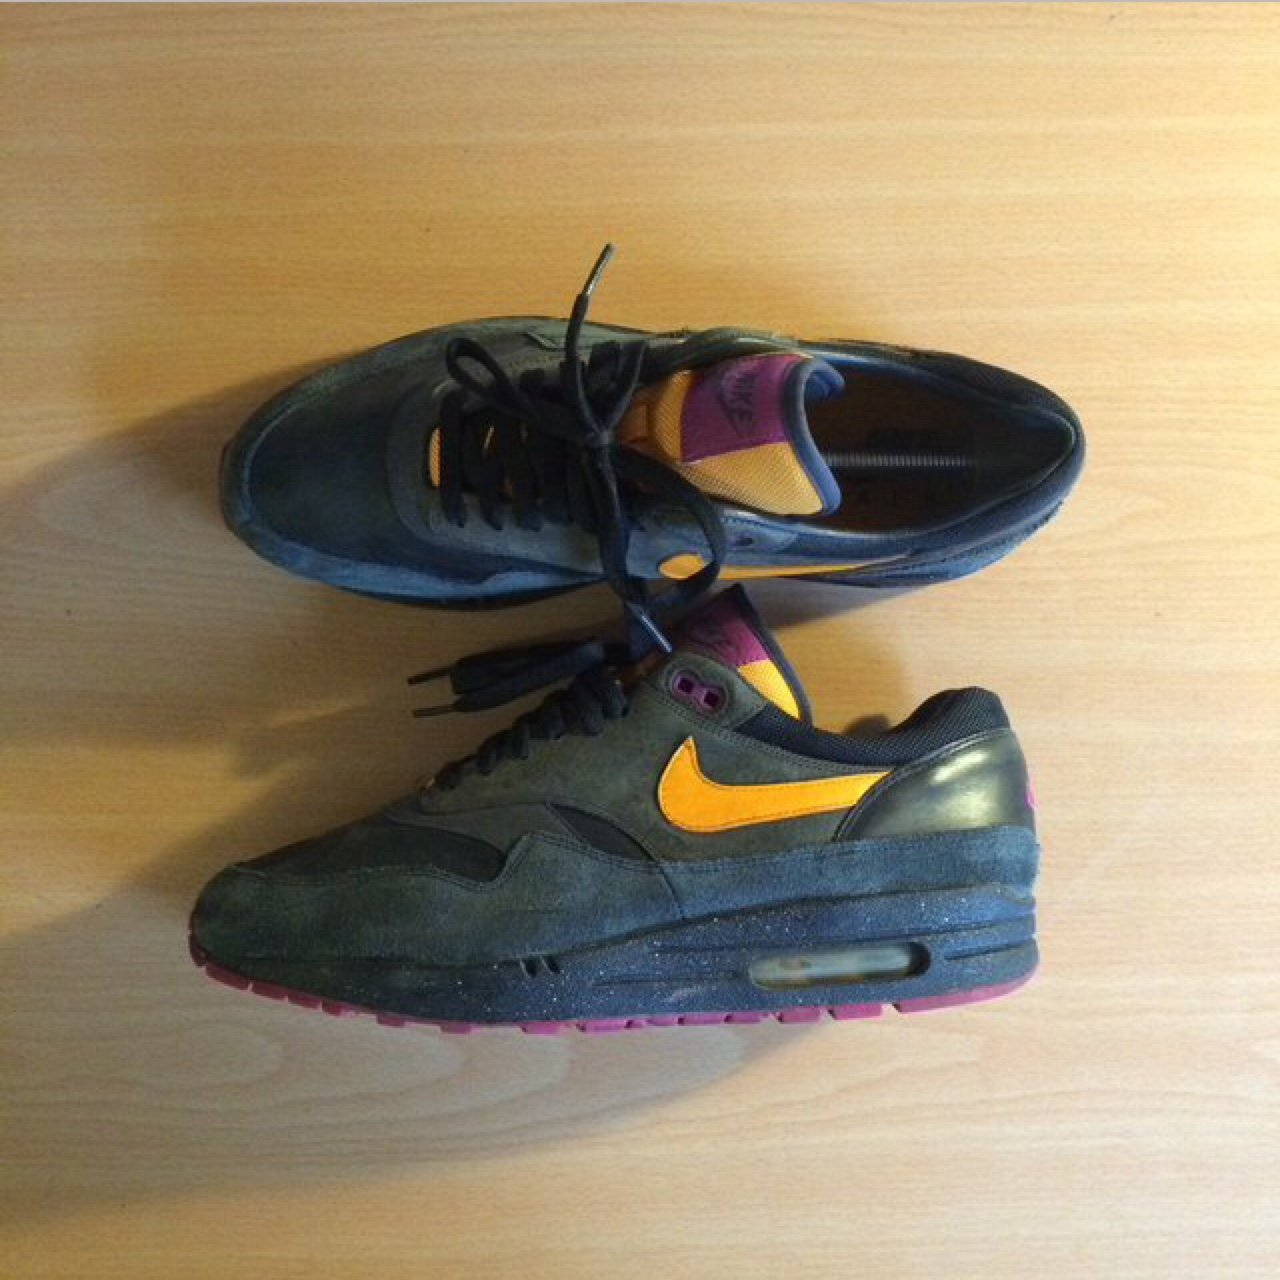 super popular a6a47 f03e4 Air Max 1 Premium  Terra Huarache  pack from 2006 in leather - Depop